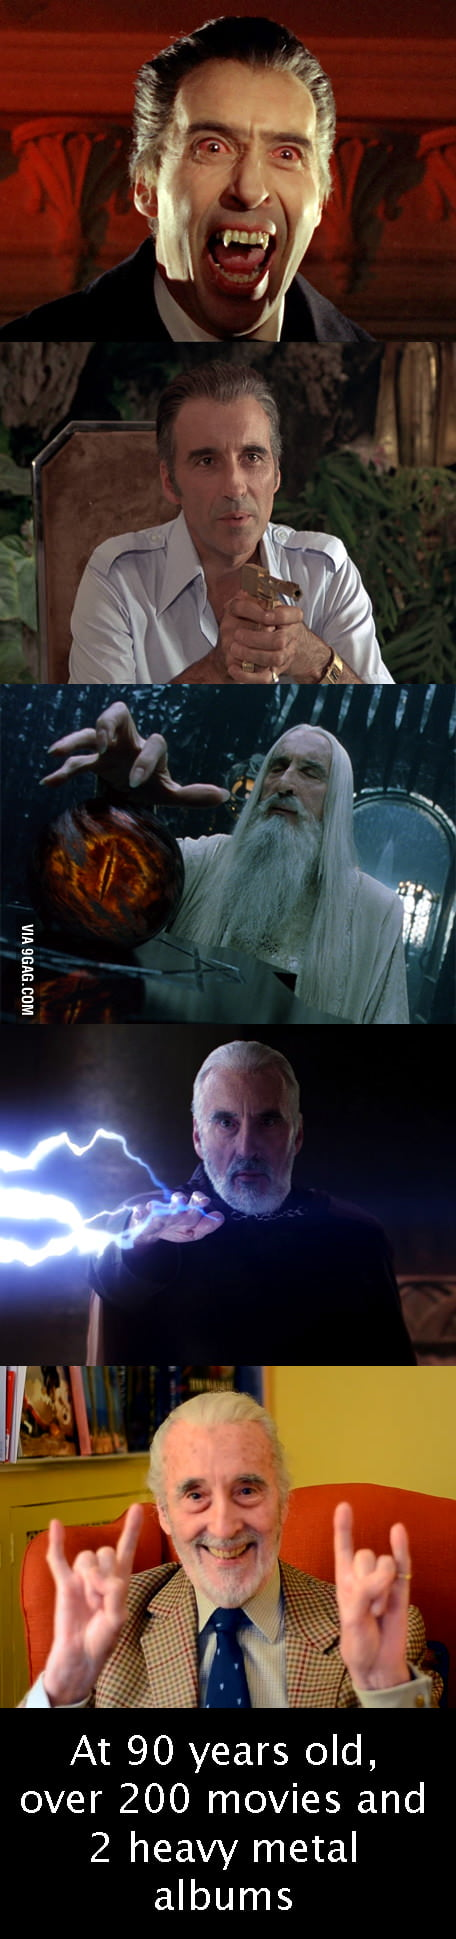 Sir Christopher Lee rocks!